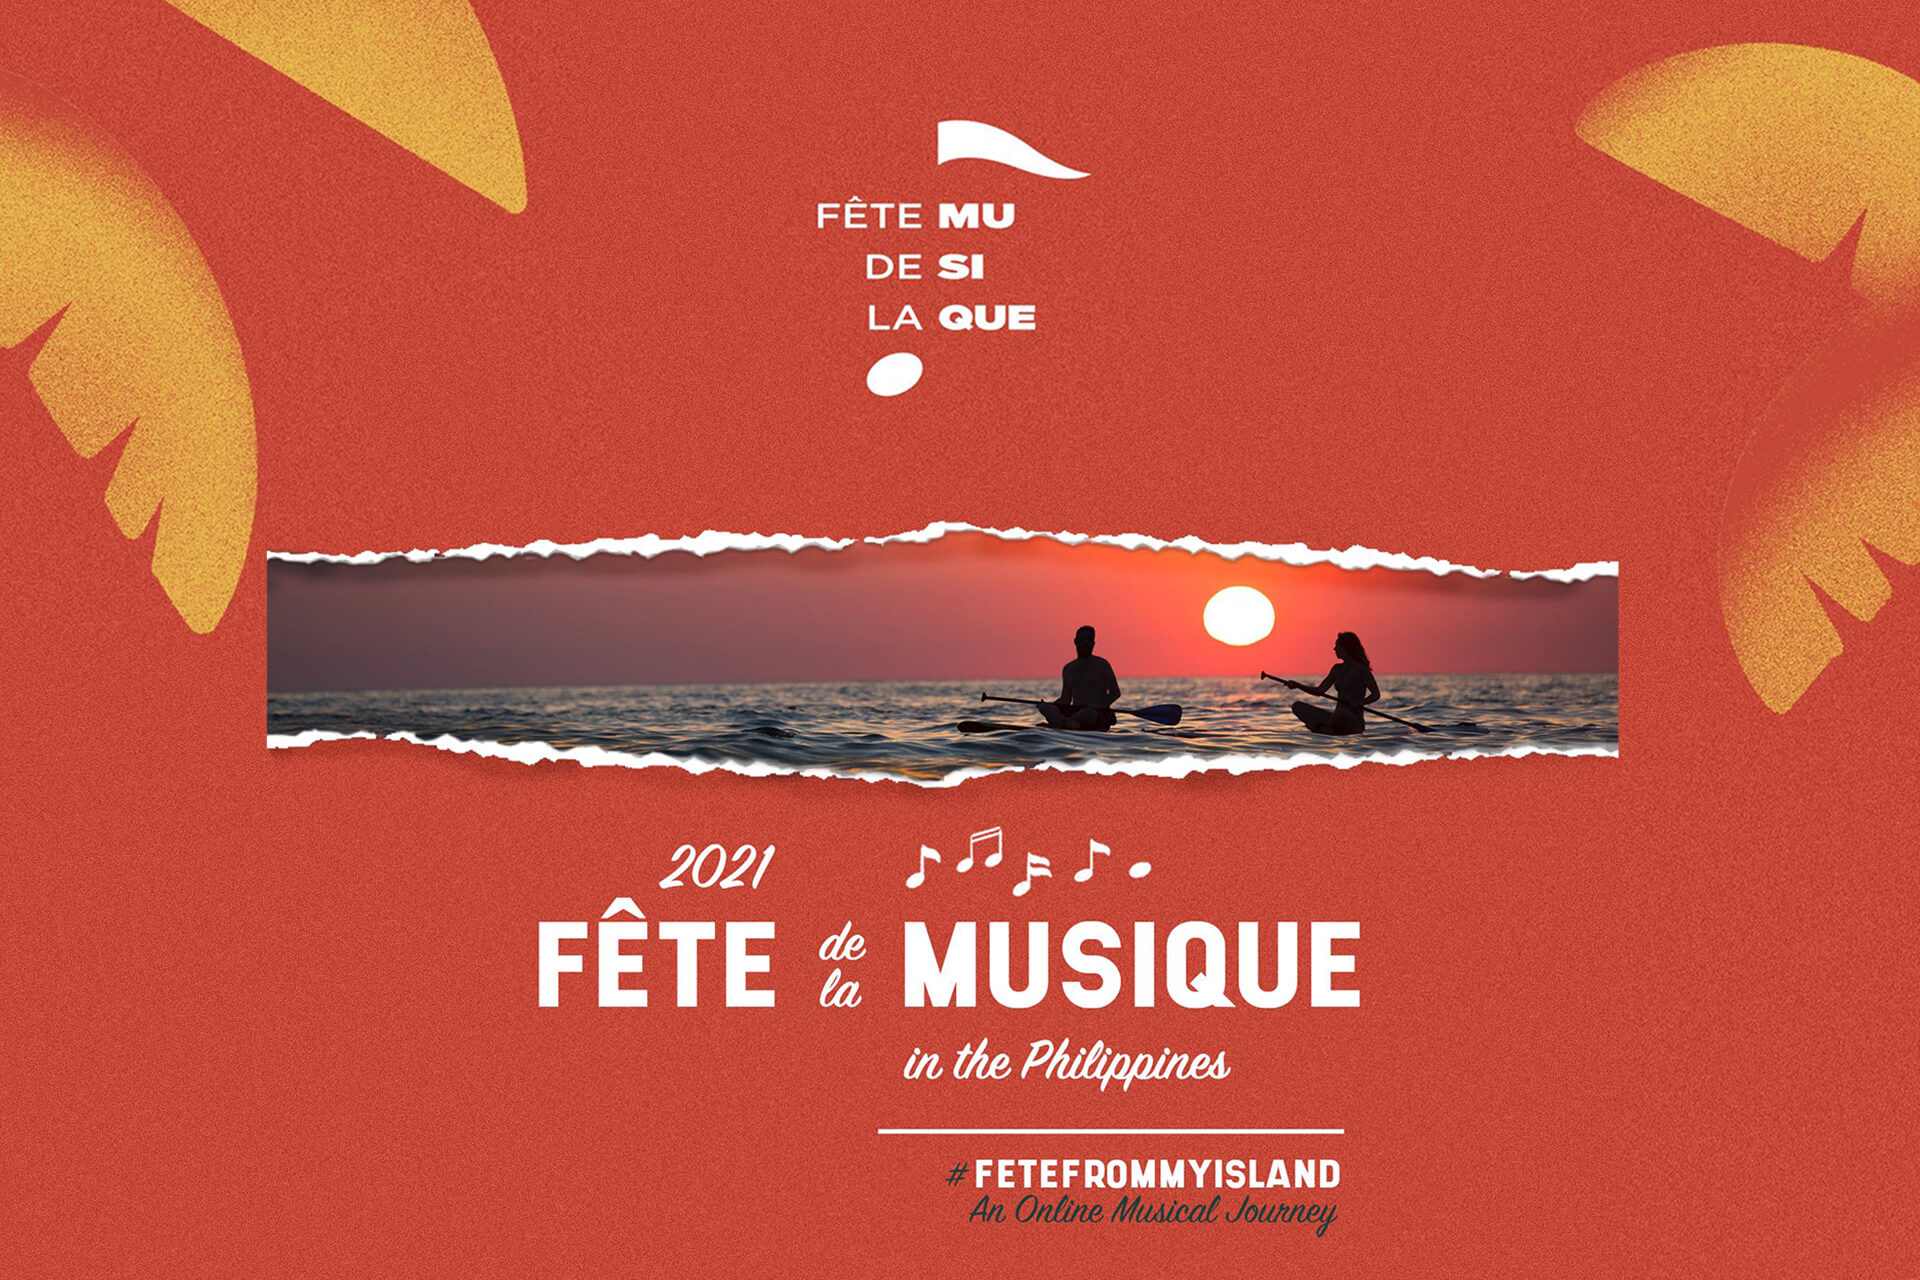 Fête de la Musique unites travel and music in this year's online 4-day event